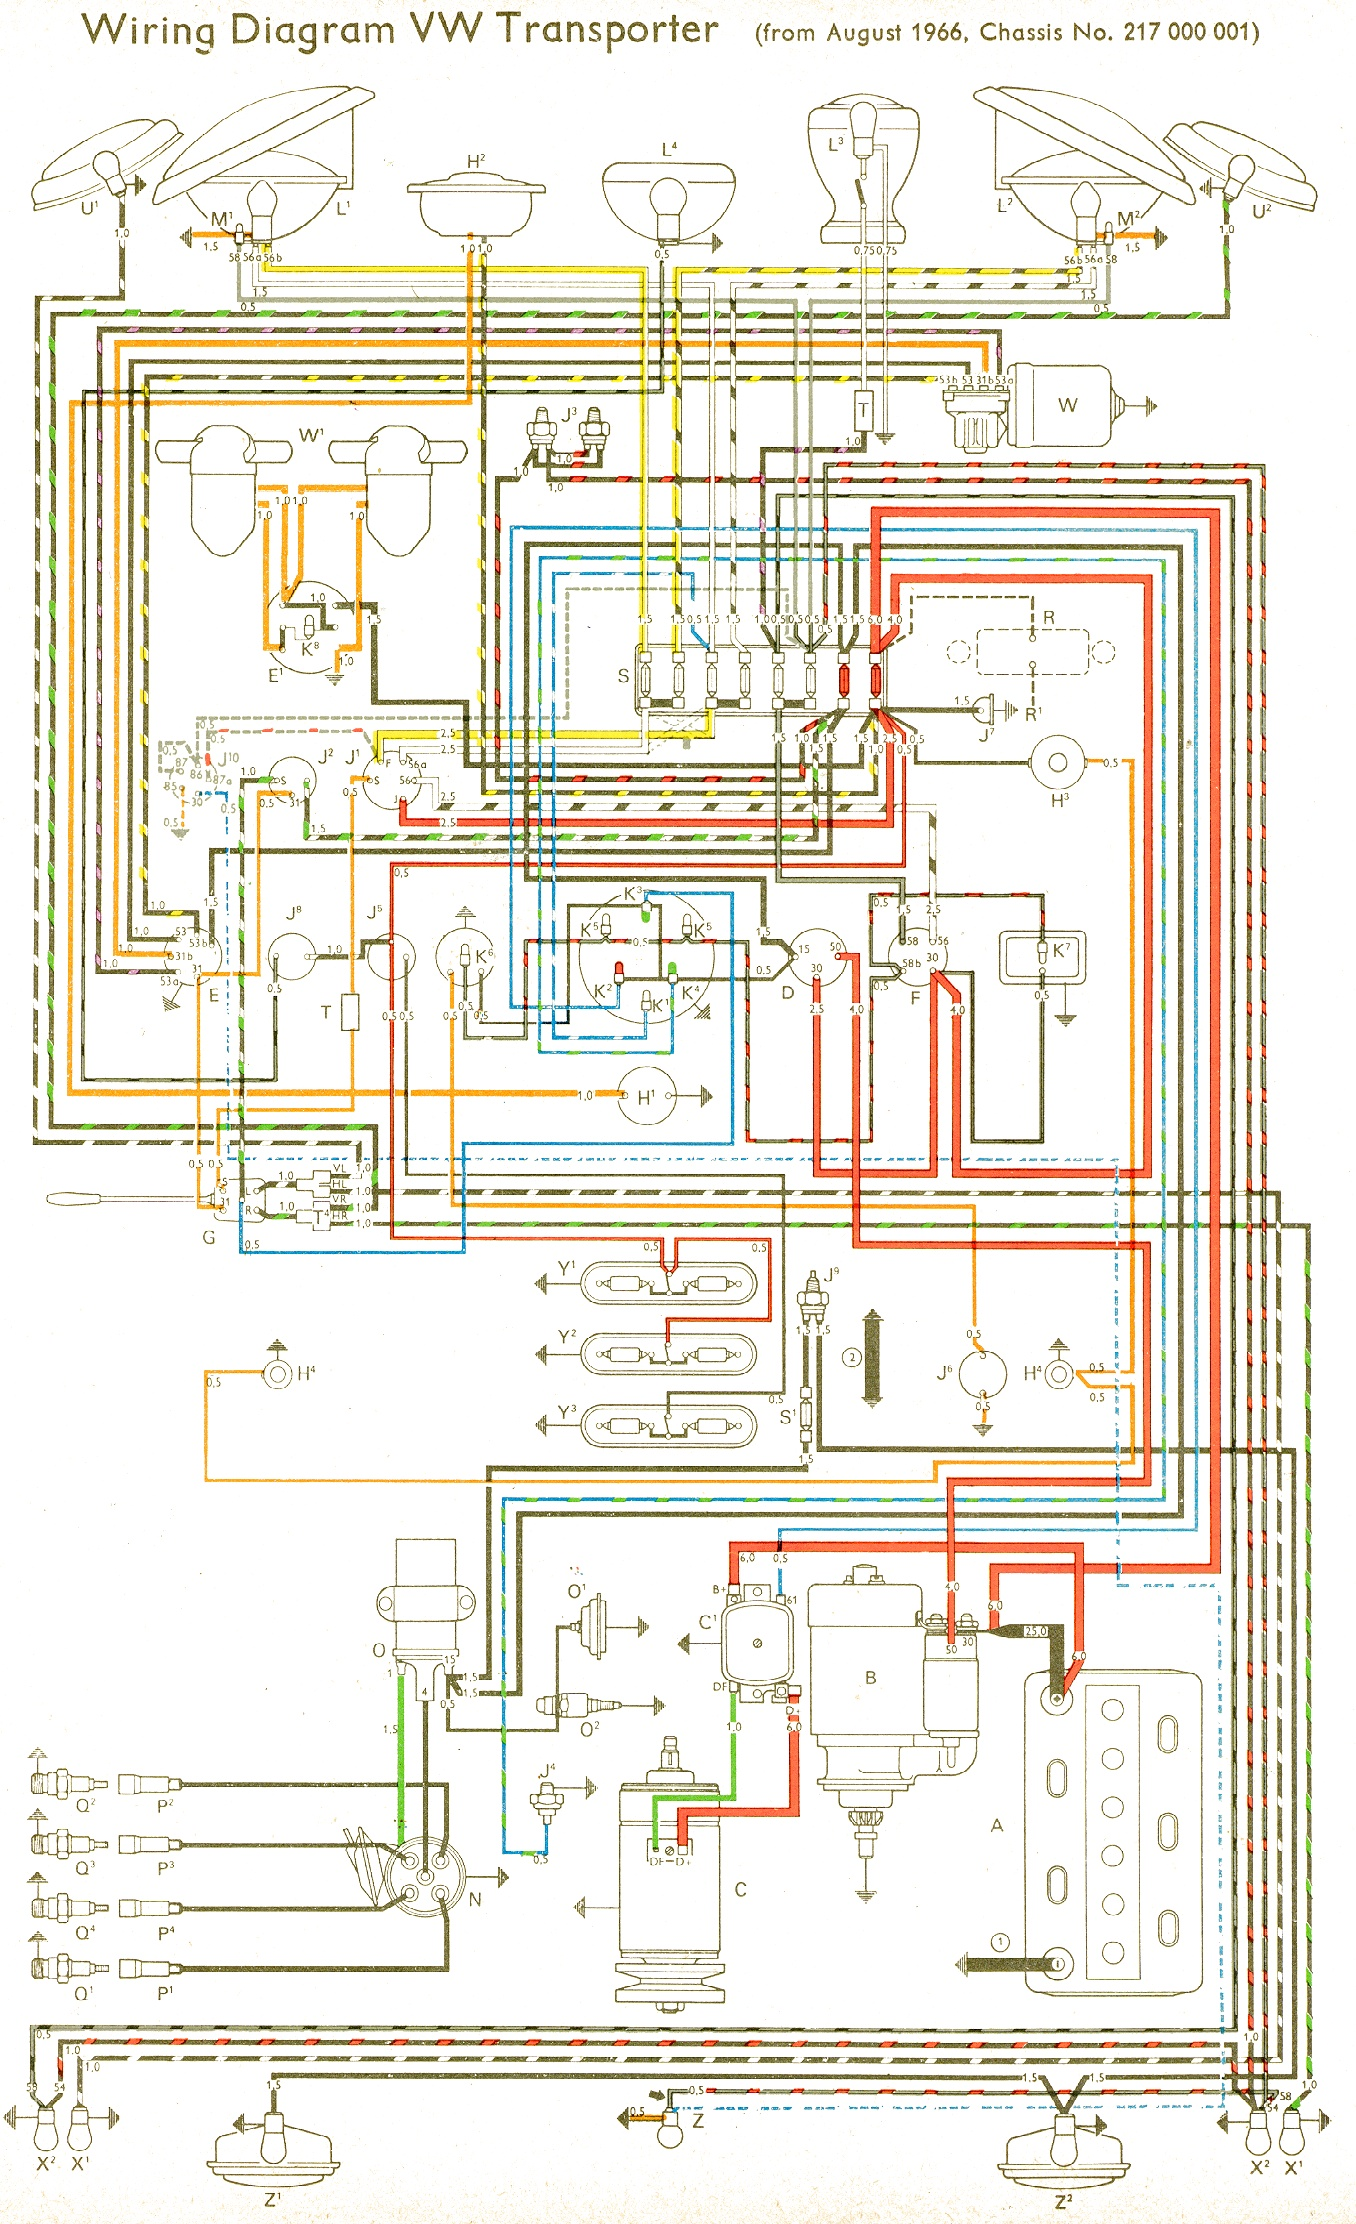 2003 Volkswagen Jetta Fuse Box Diagram Wiring Library Grand Am Vw Diagrams Rh Volkspower Nl 1999 Beetle